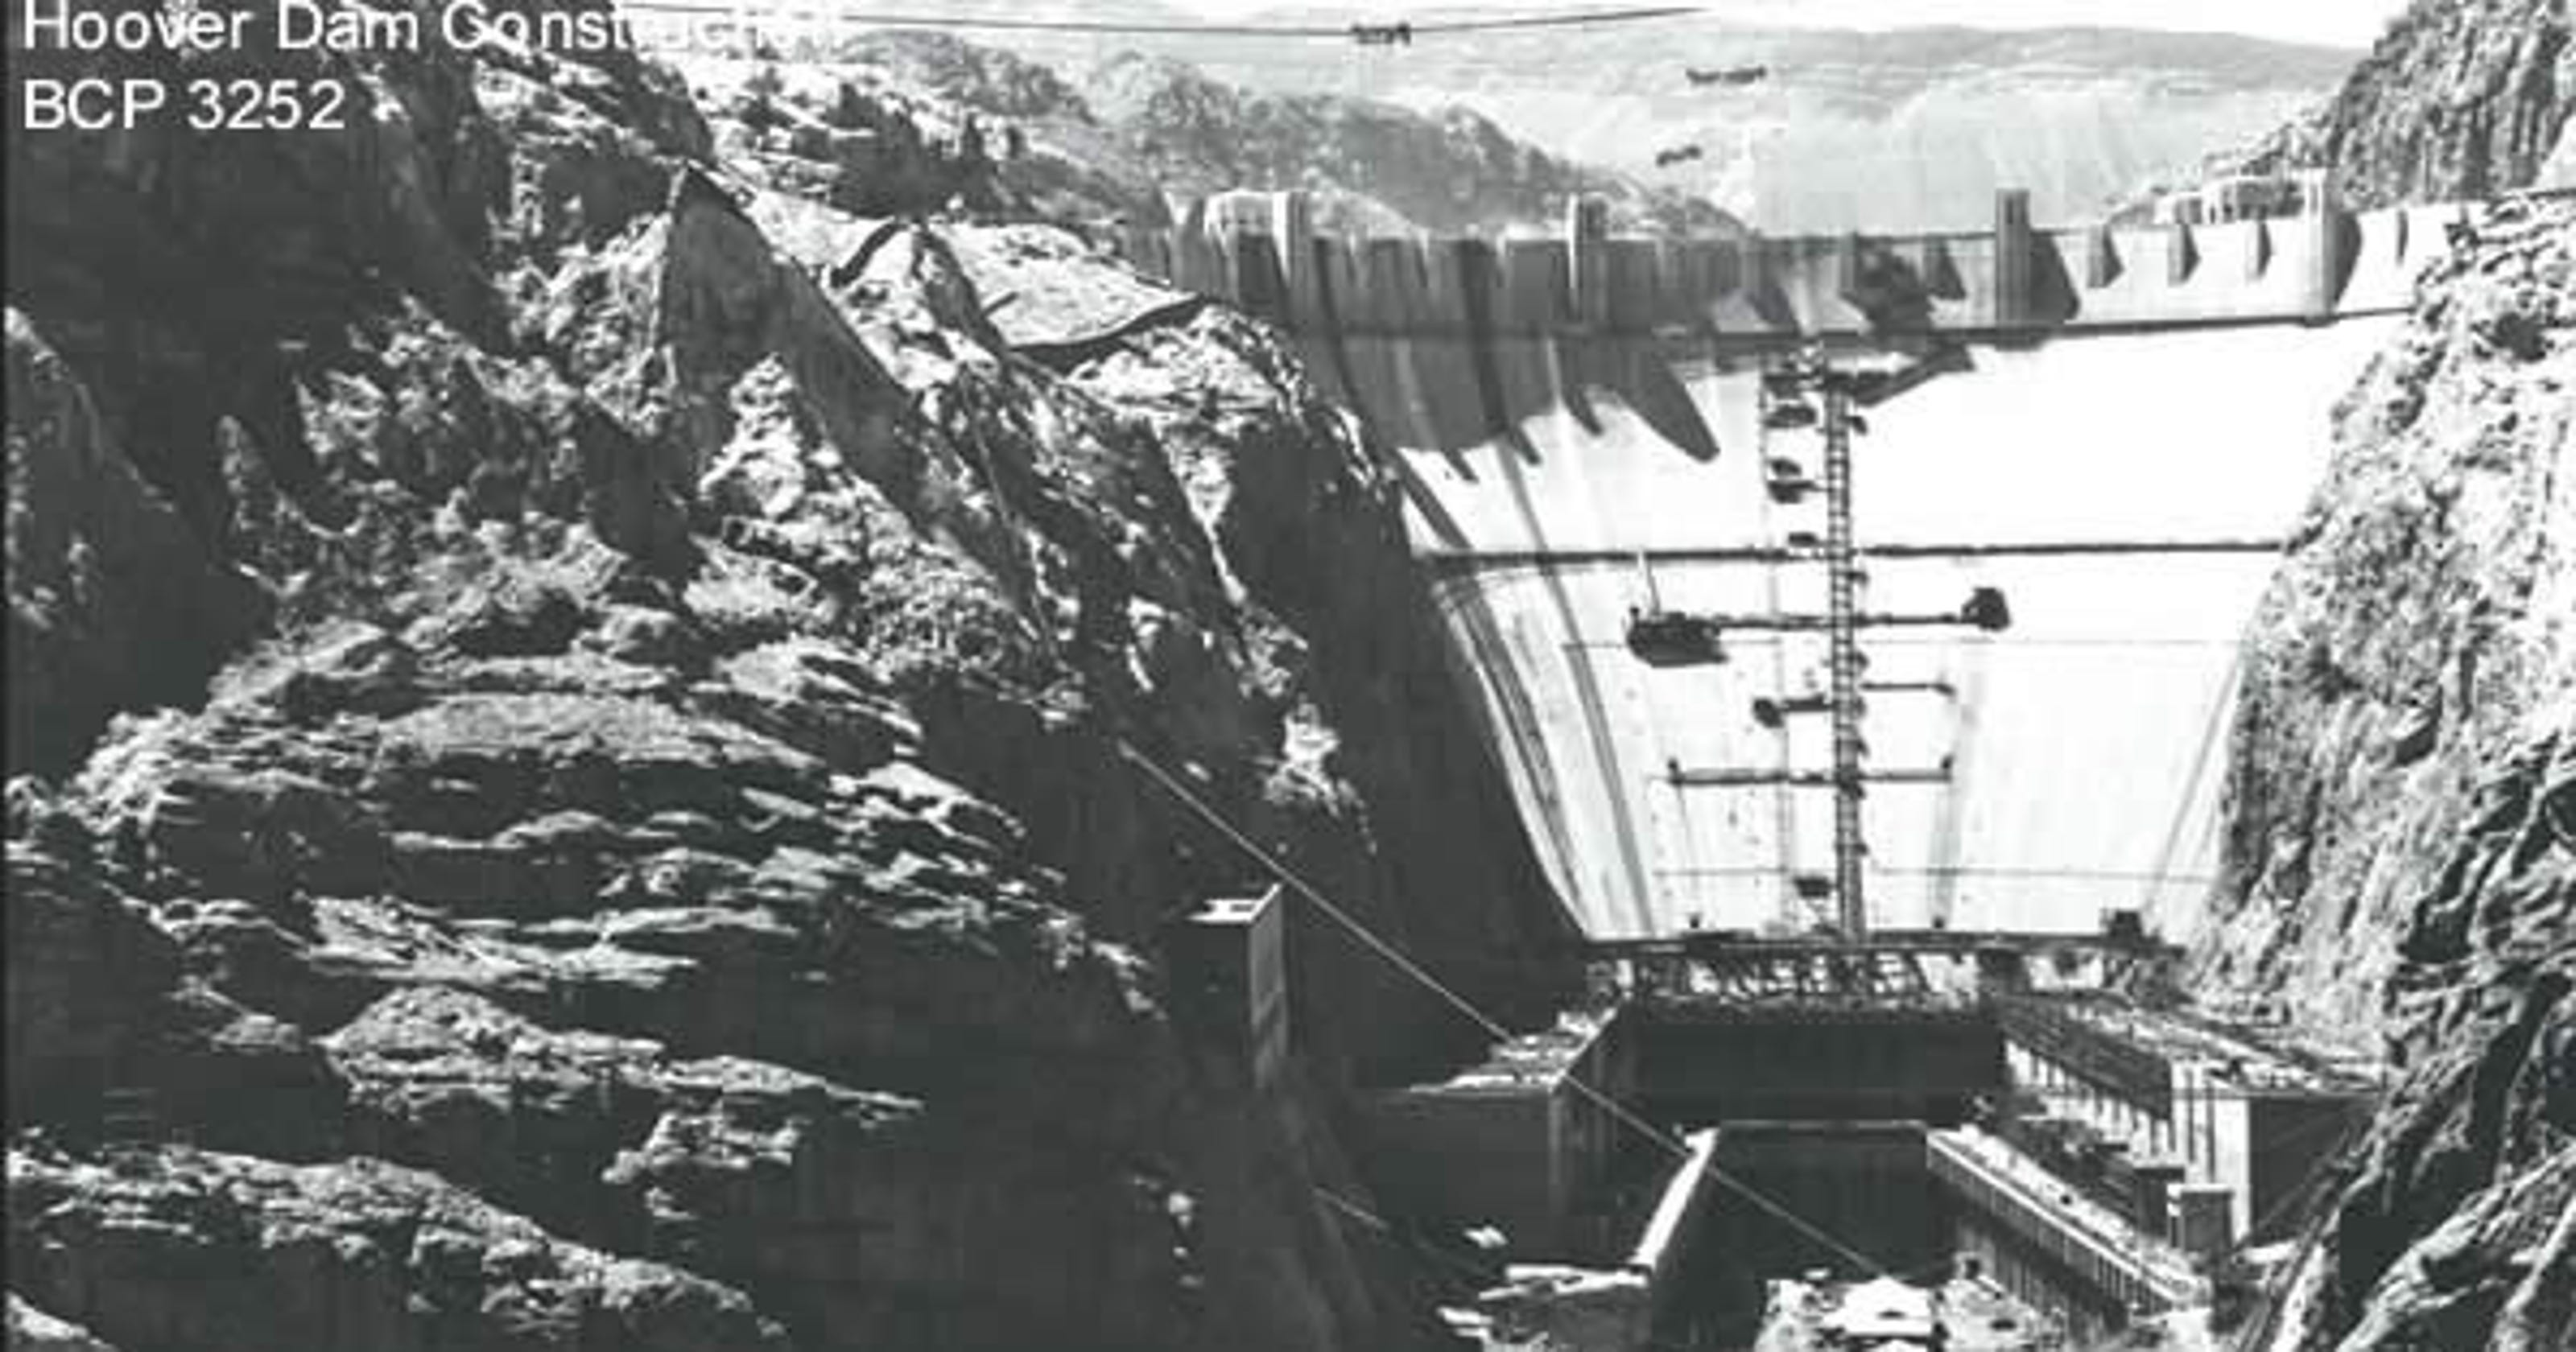 Fact Checker: A look at Nevada myths: Hoover Dam deaths, Union gold